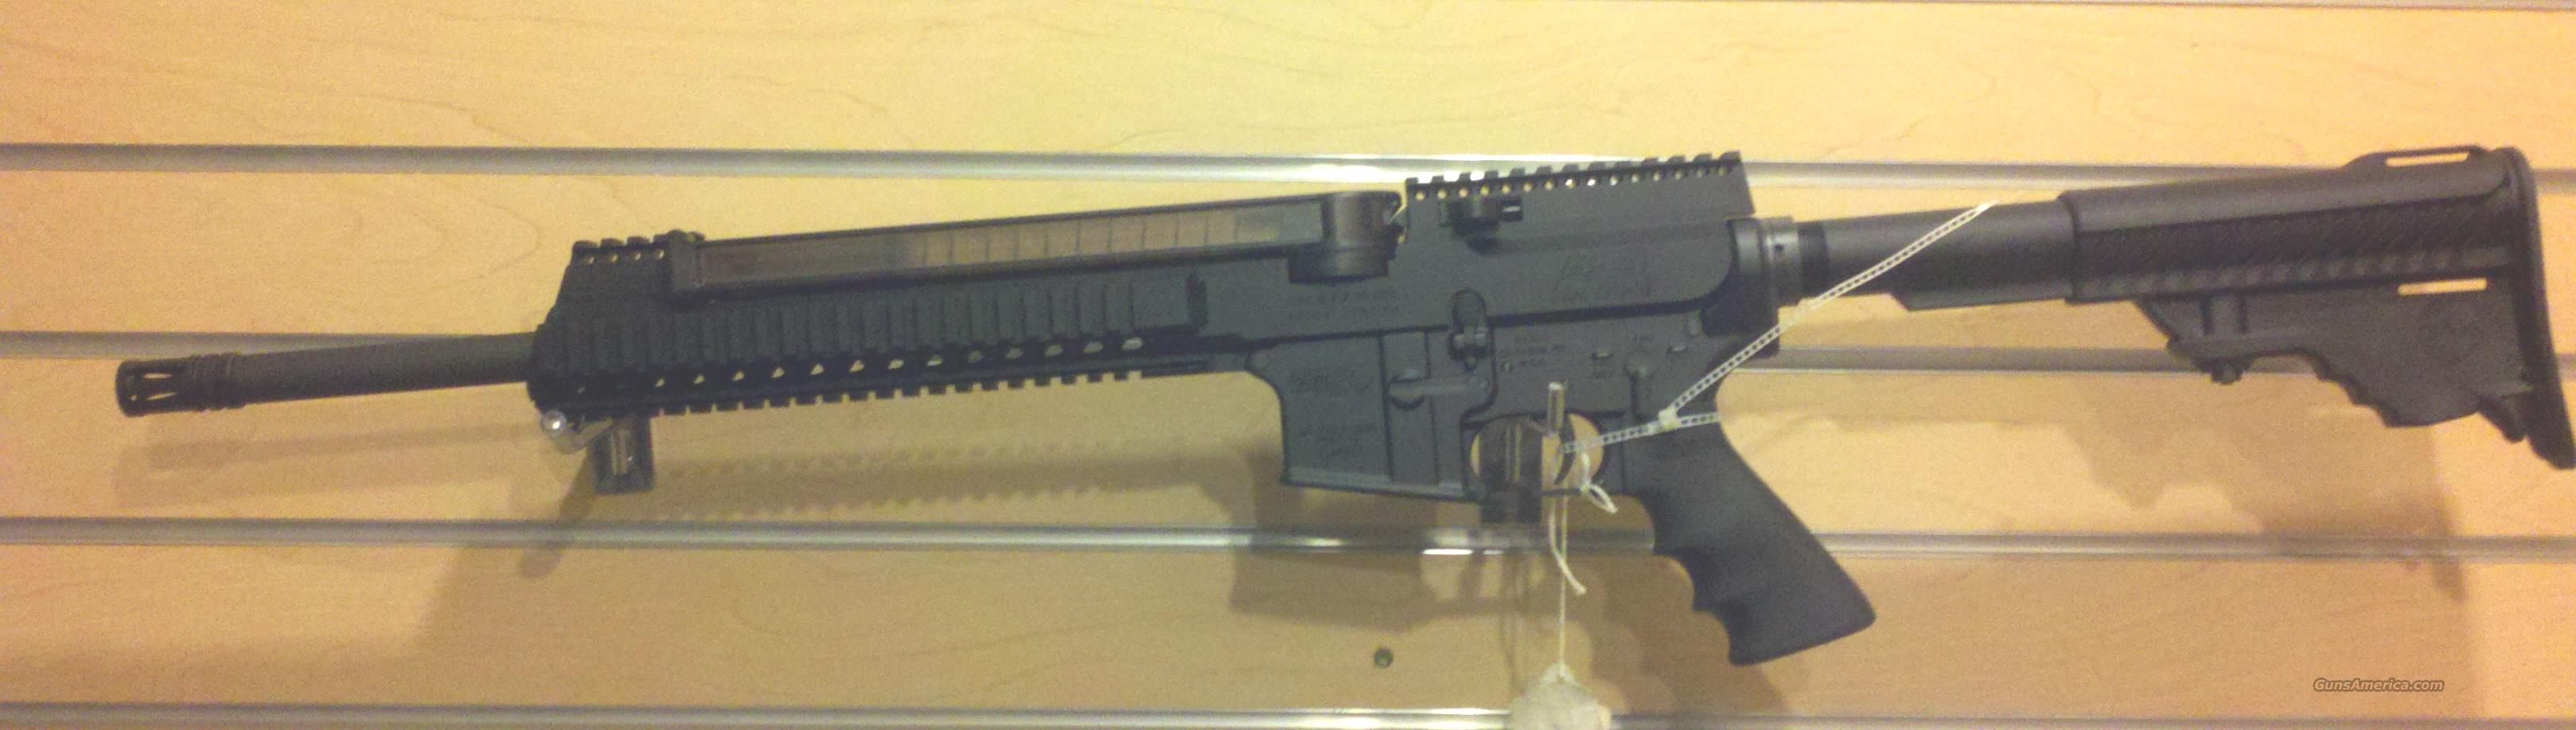 DPMS AR-15 WITH A FIVESEVEN UPPER ON  Guns > Rifles > DPMS - Panther Arms > Complete Rifle